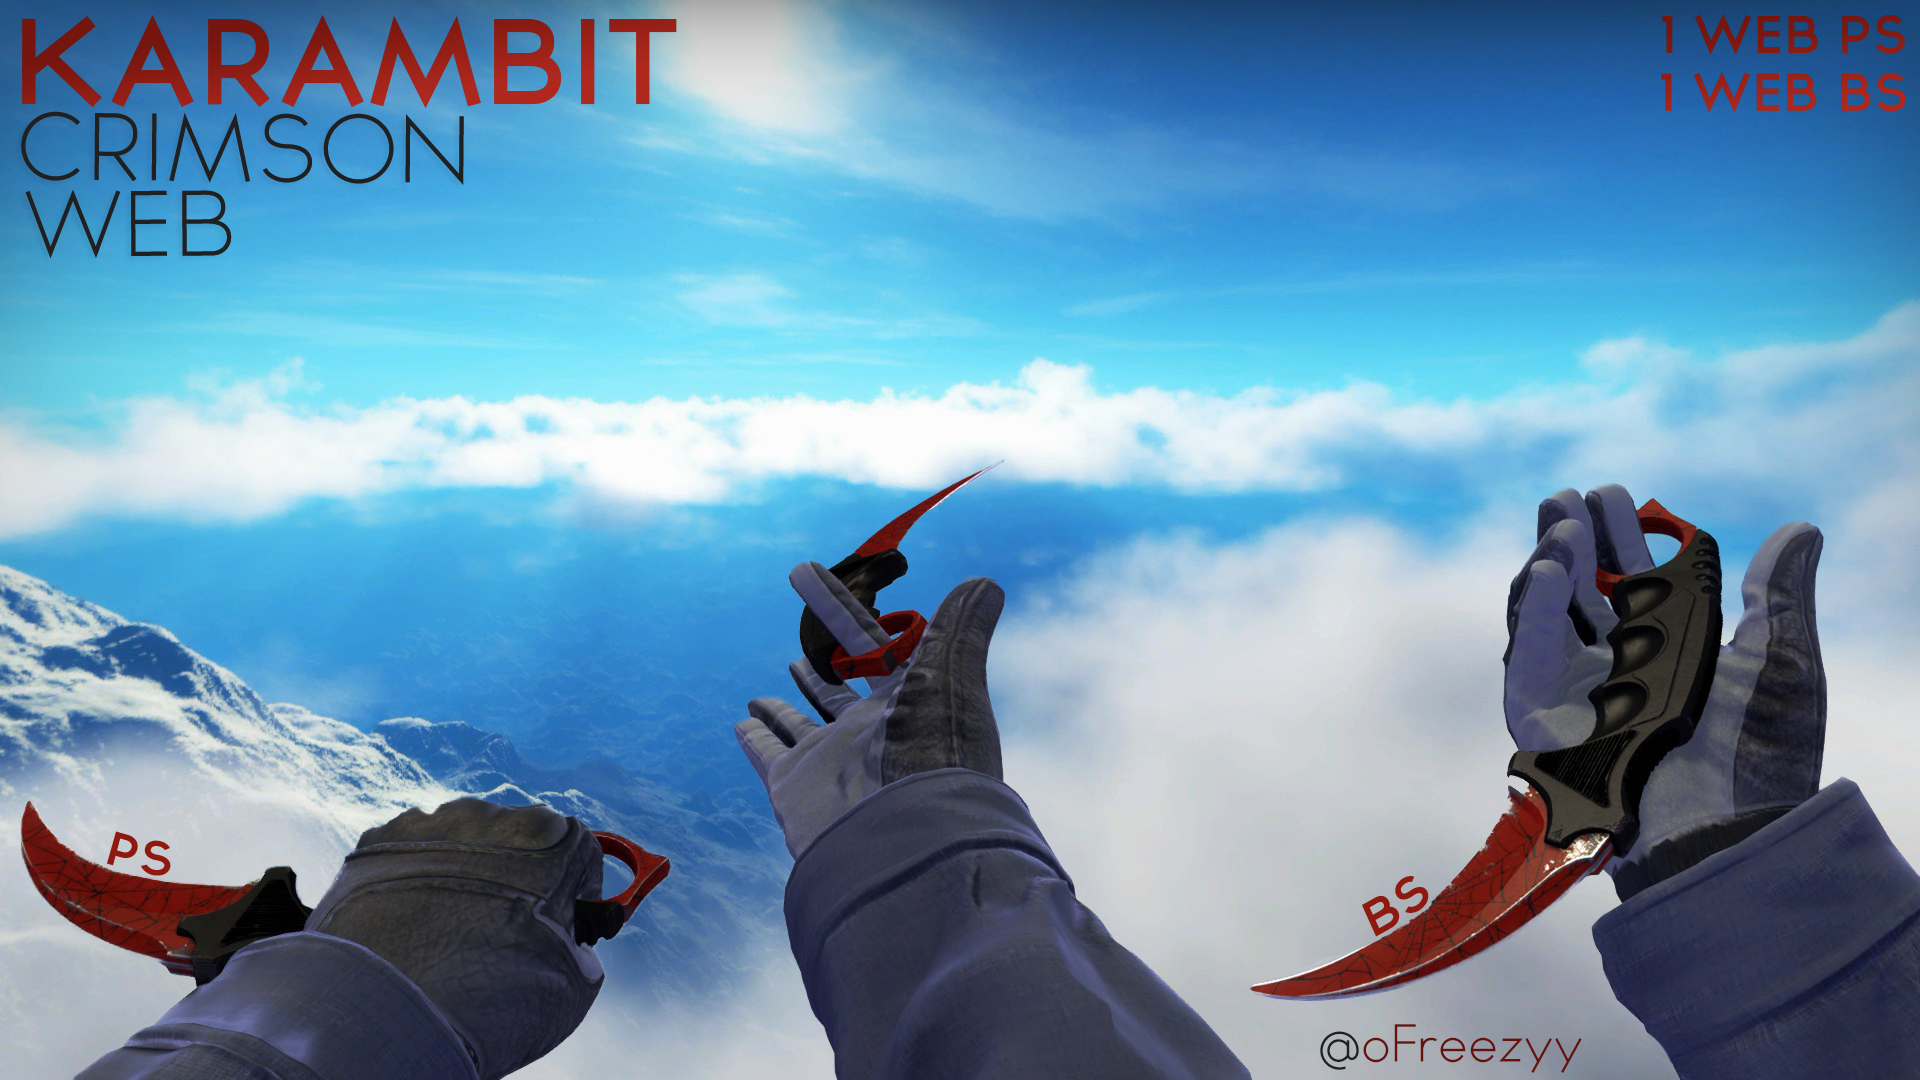 Karambit Crimson Web Wallpapers HD